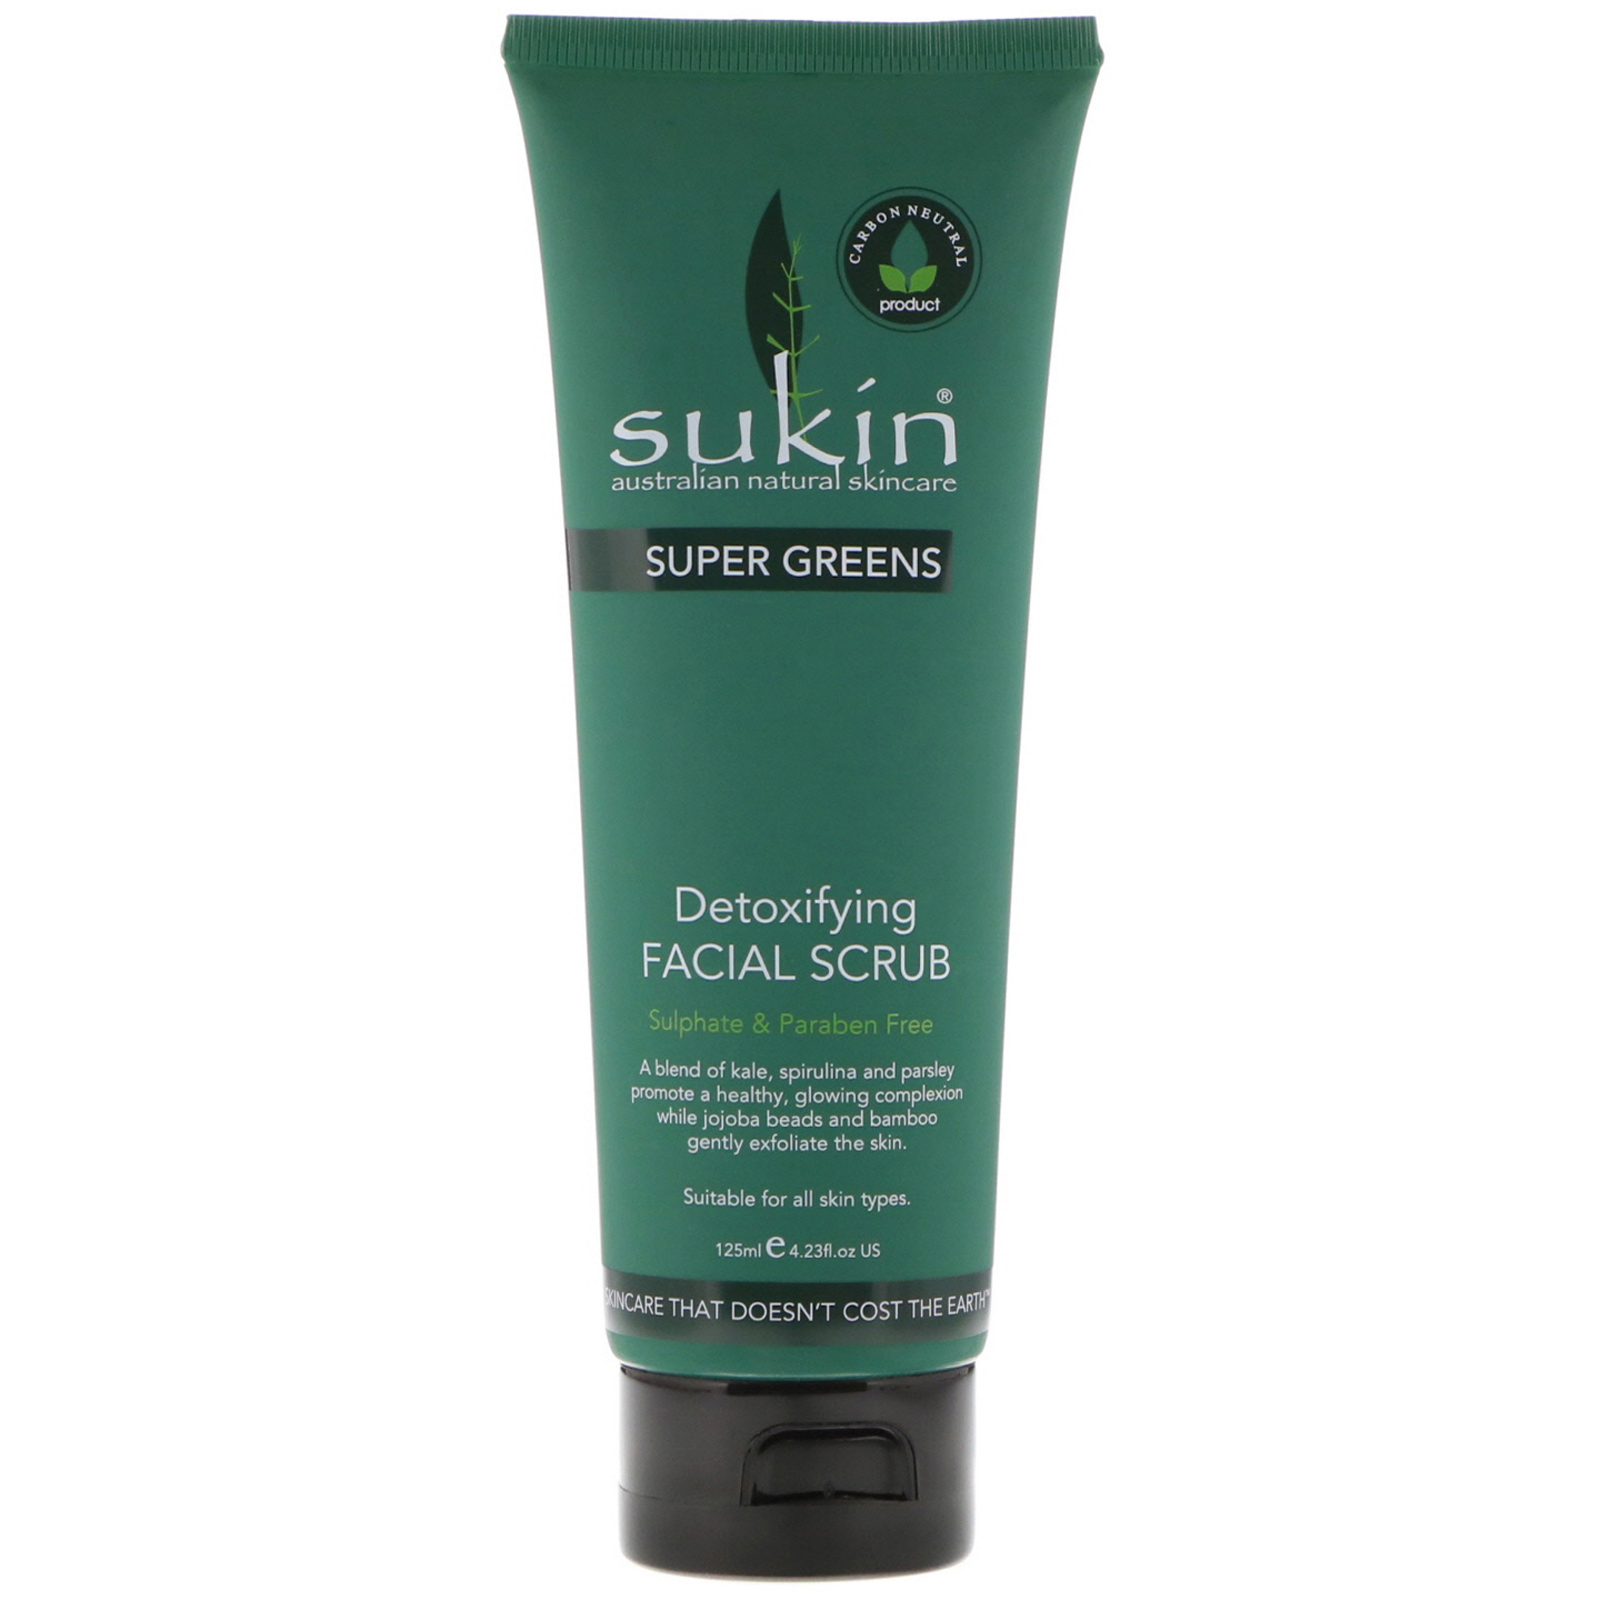 Sukin, Super Greens, Detoxifying Facial Scrub, 4.23 fl oz (125 ml)